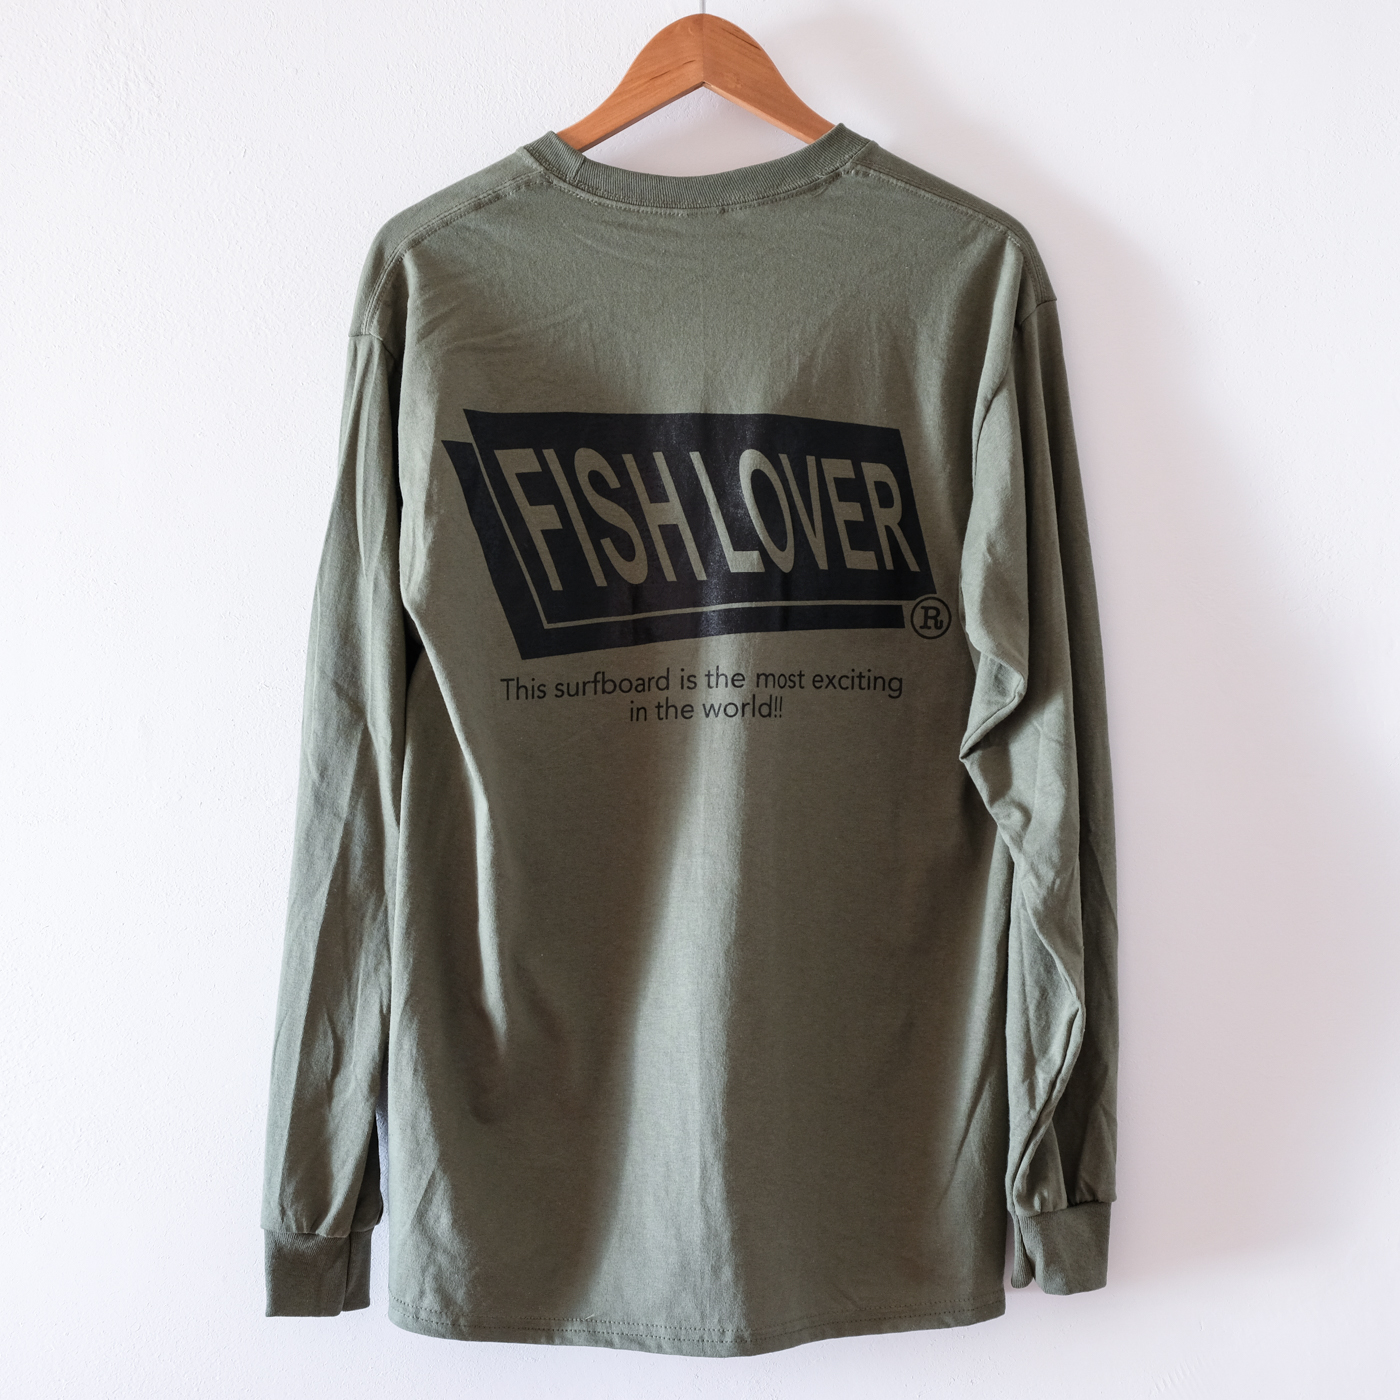 FISH LOVER(オサカナフェスティバル)6.0oz L/S Tee ULTRA COTTON